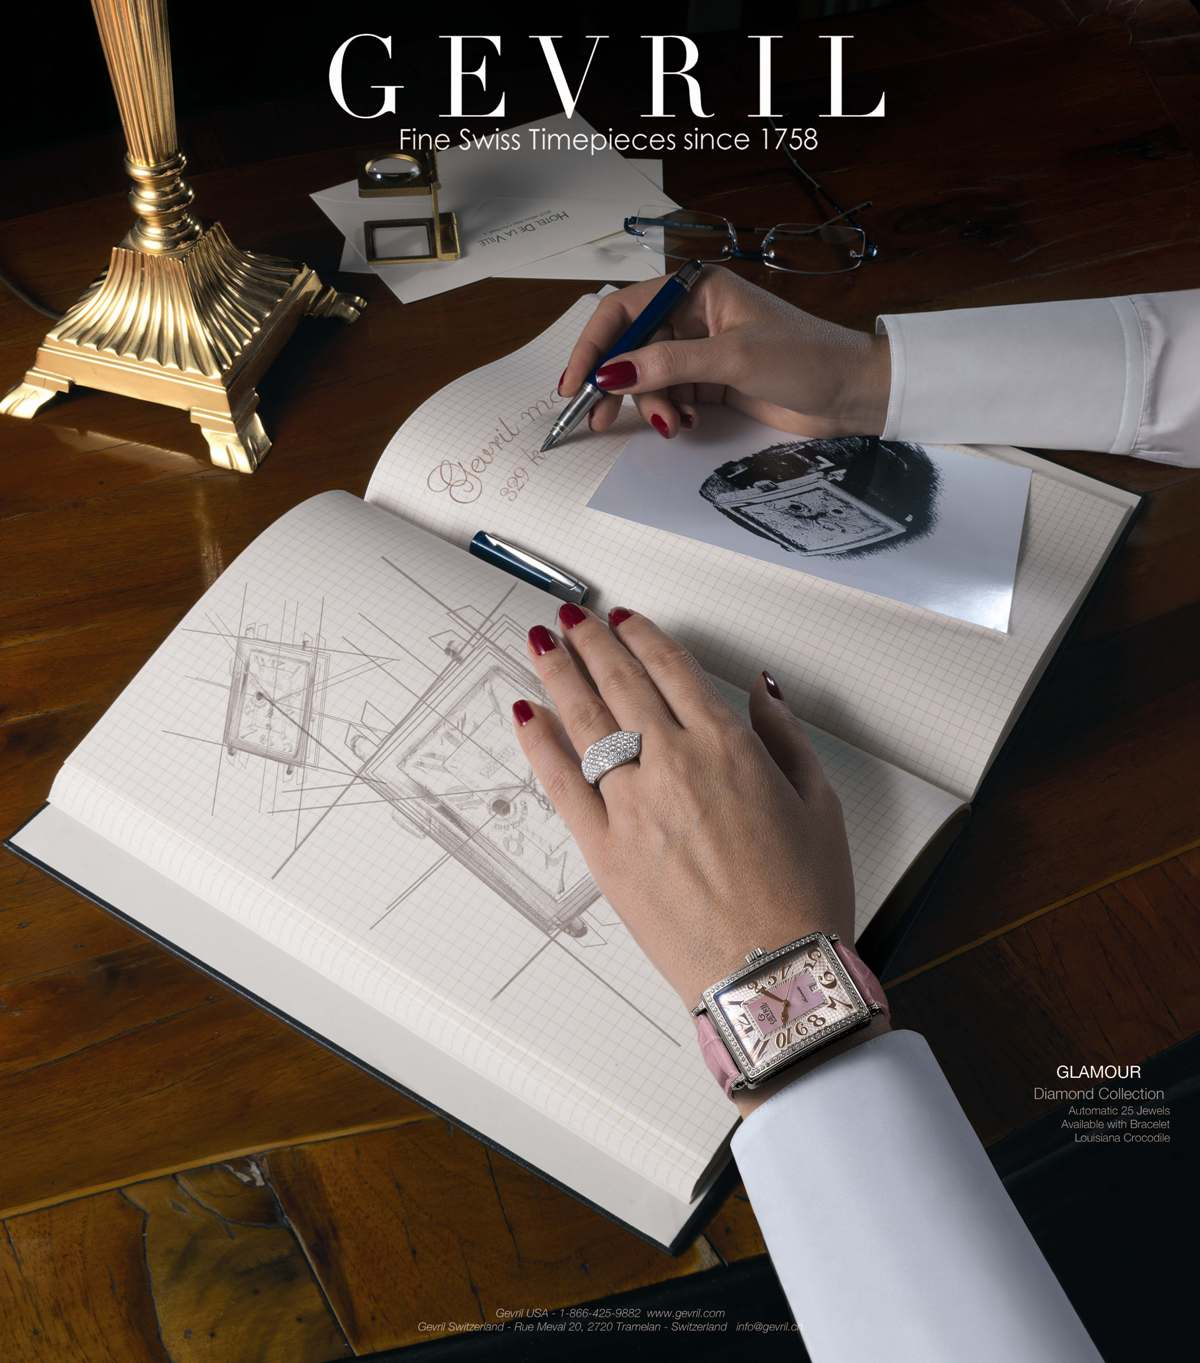 Invitation to the Gevril Watch Exhibit, March 8-14, 2012 at Baselworld 2012, Hall 1.1, Booth A-13